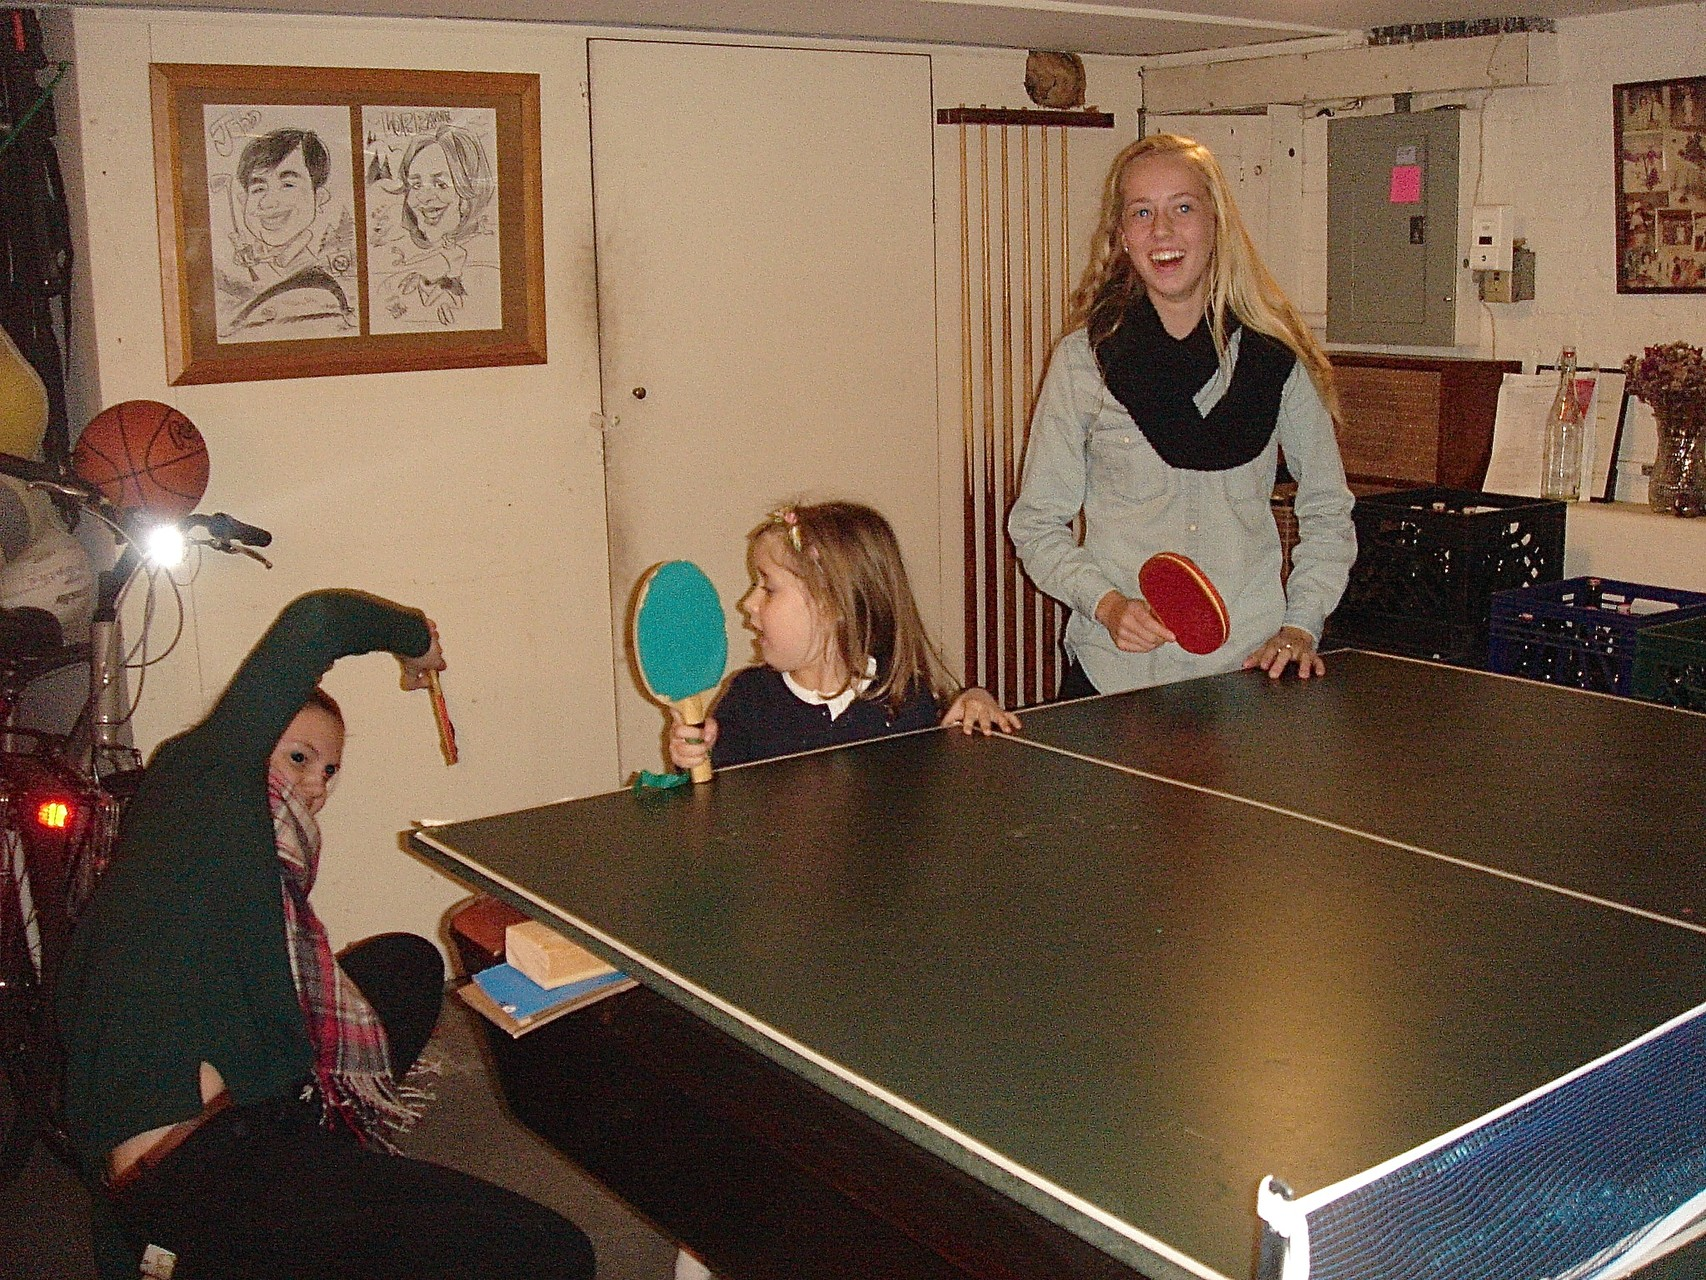 Kate, Charlotte & Brooke play ping-pong